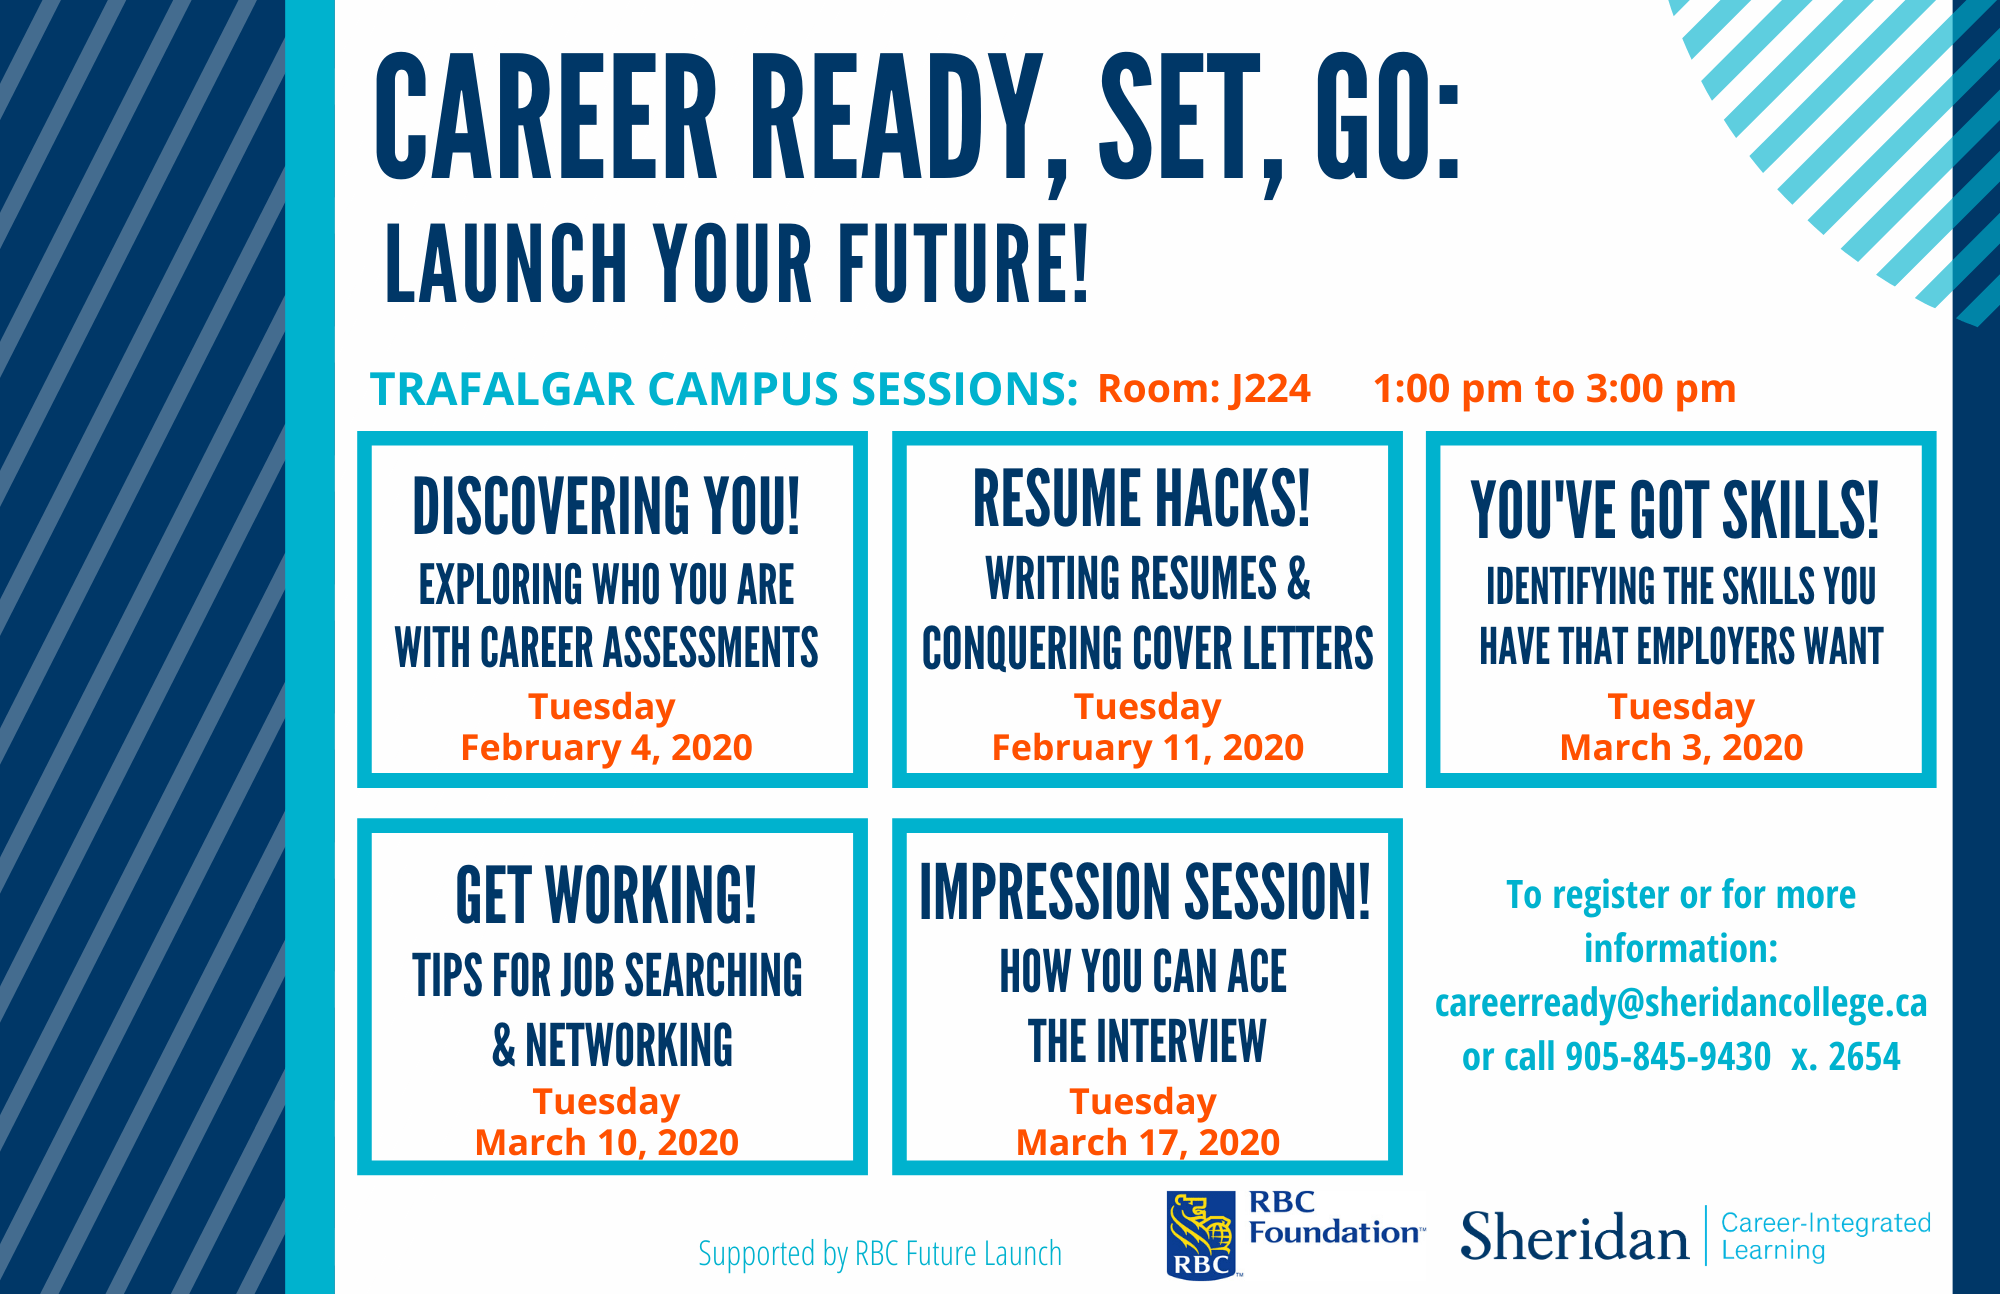 career ready launch your future - Trafalgar campus 2020 - revised